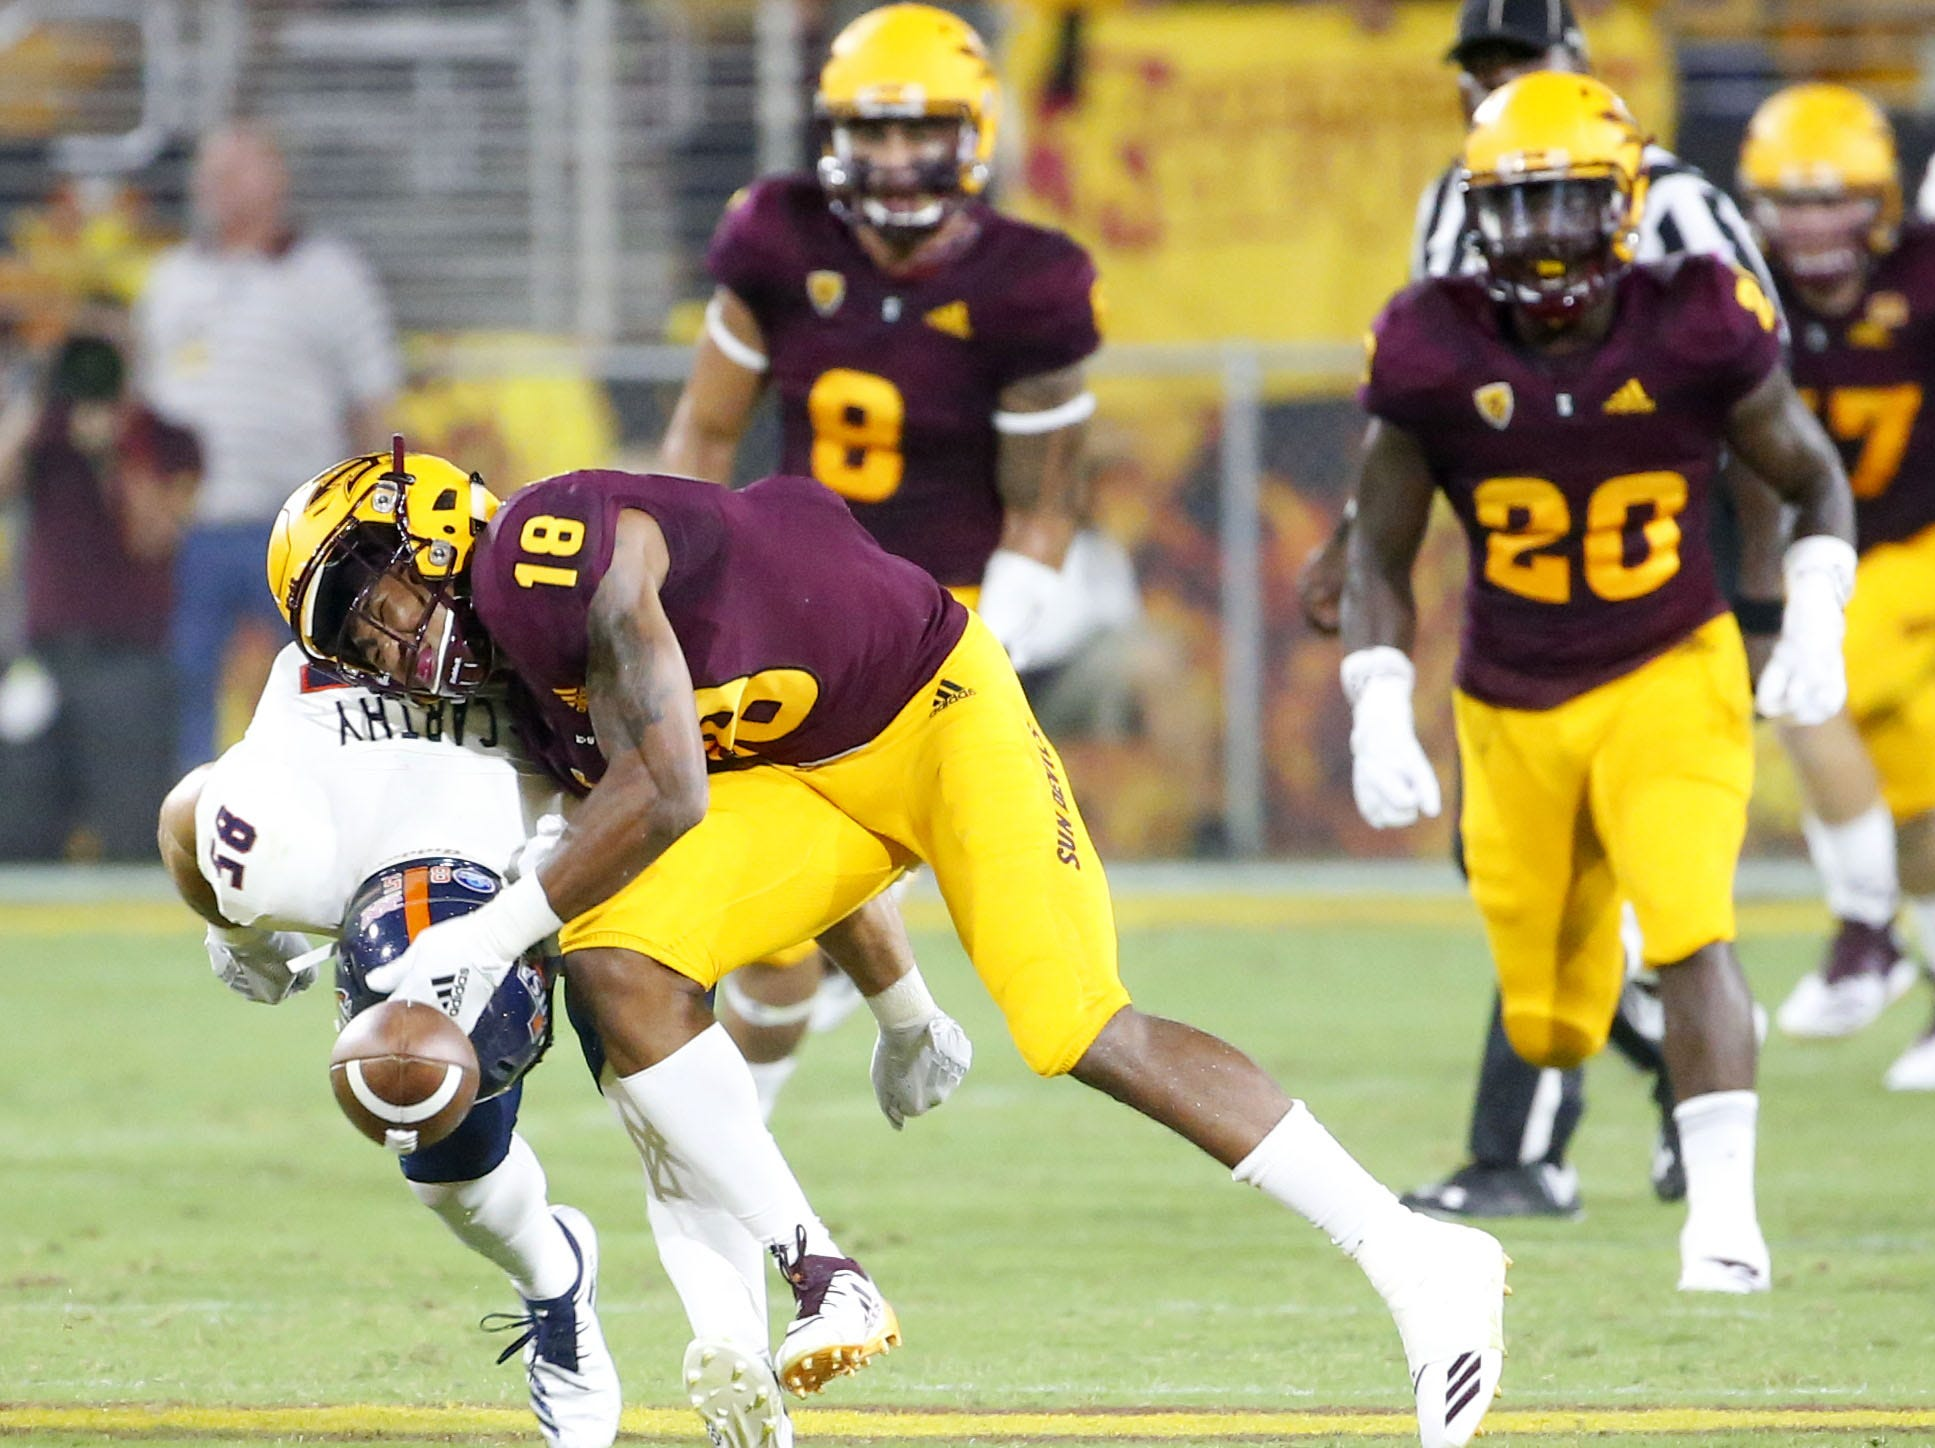 Arizona State Sun Devils cornerback Langston Frederick (18) breaks up a pass intended for Roadrunners tight end Carter McCarthy (85) during a football game at Sun Devil Stadium in Tempe on September 1, 2018.